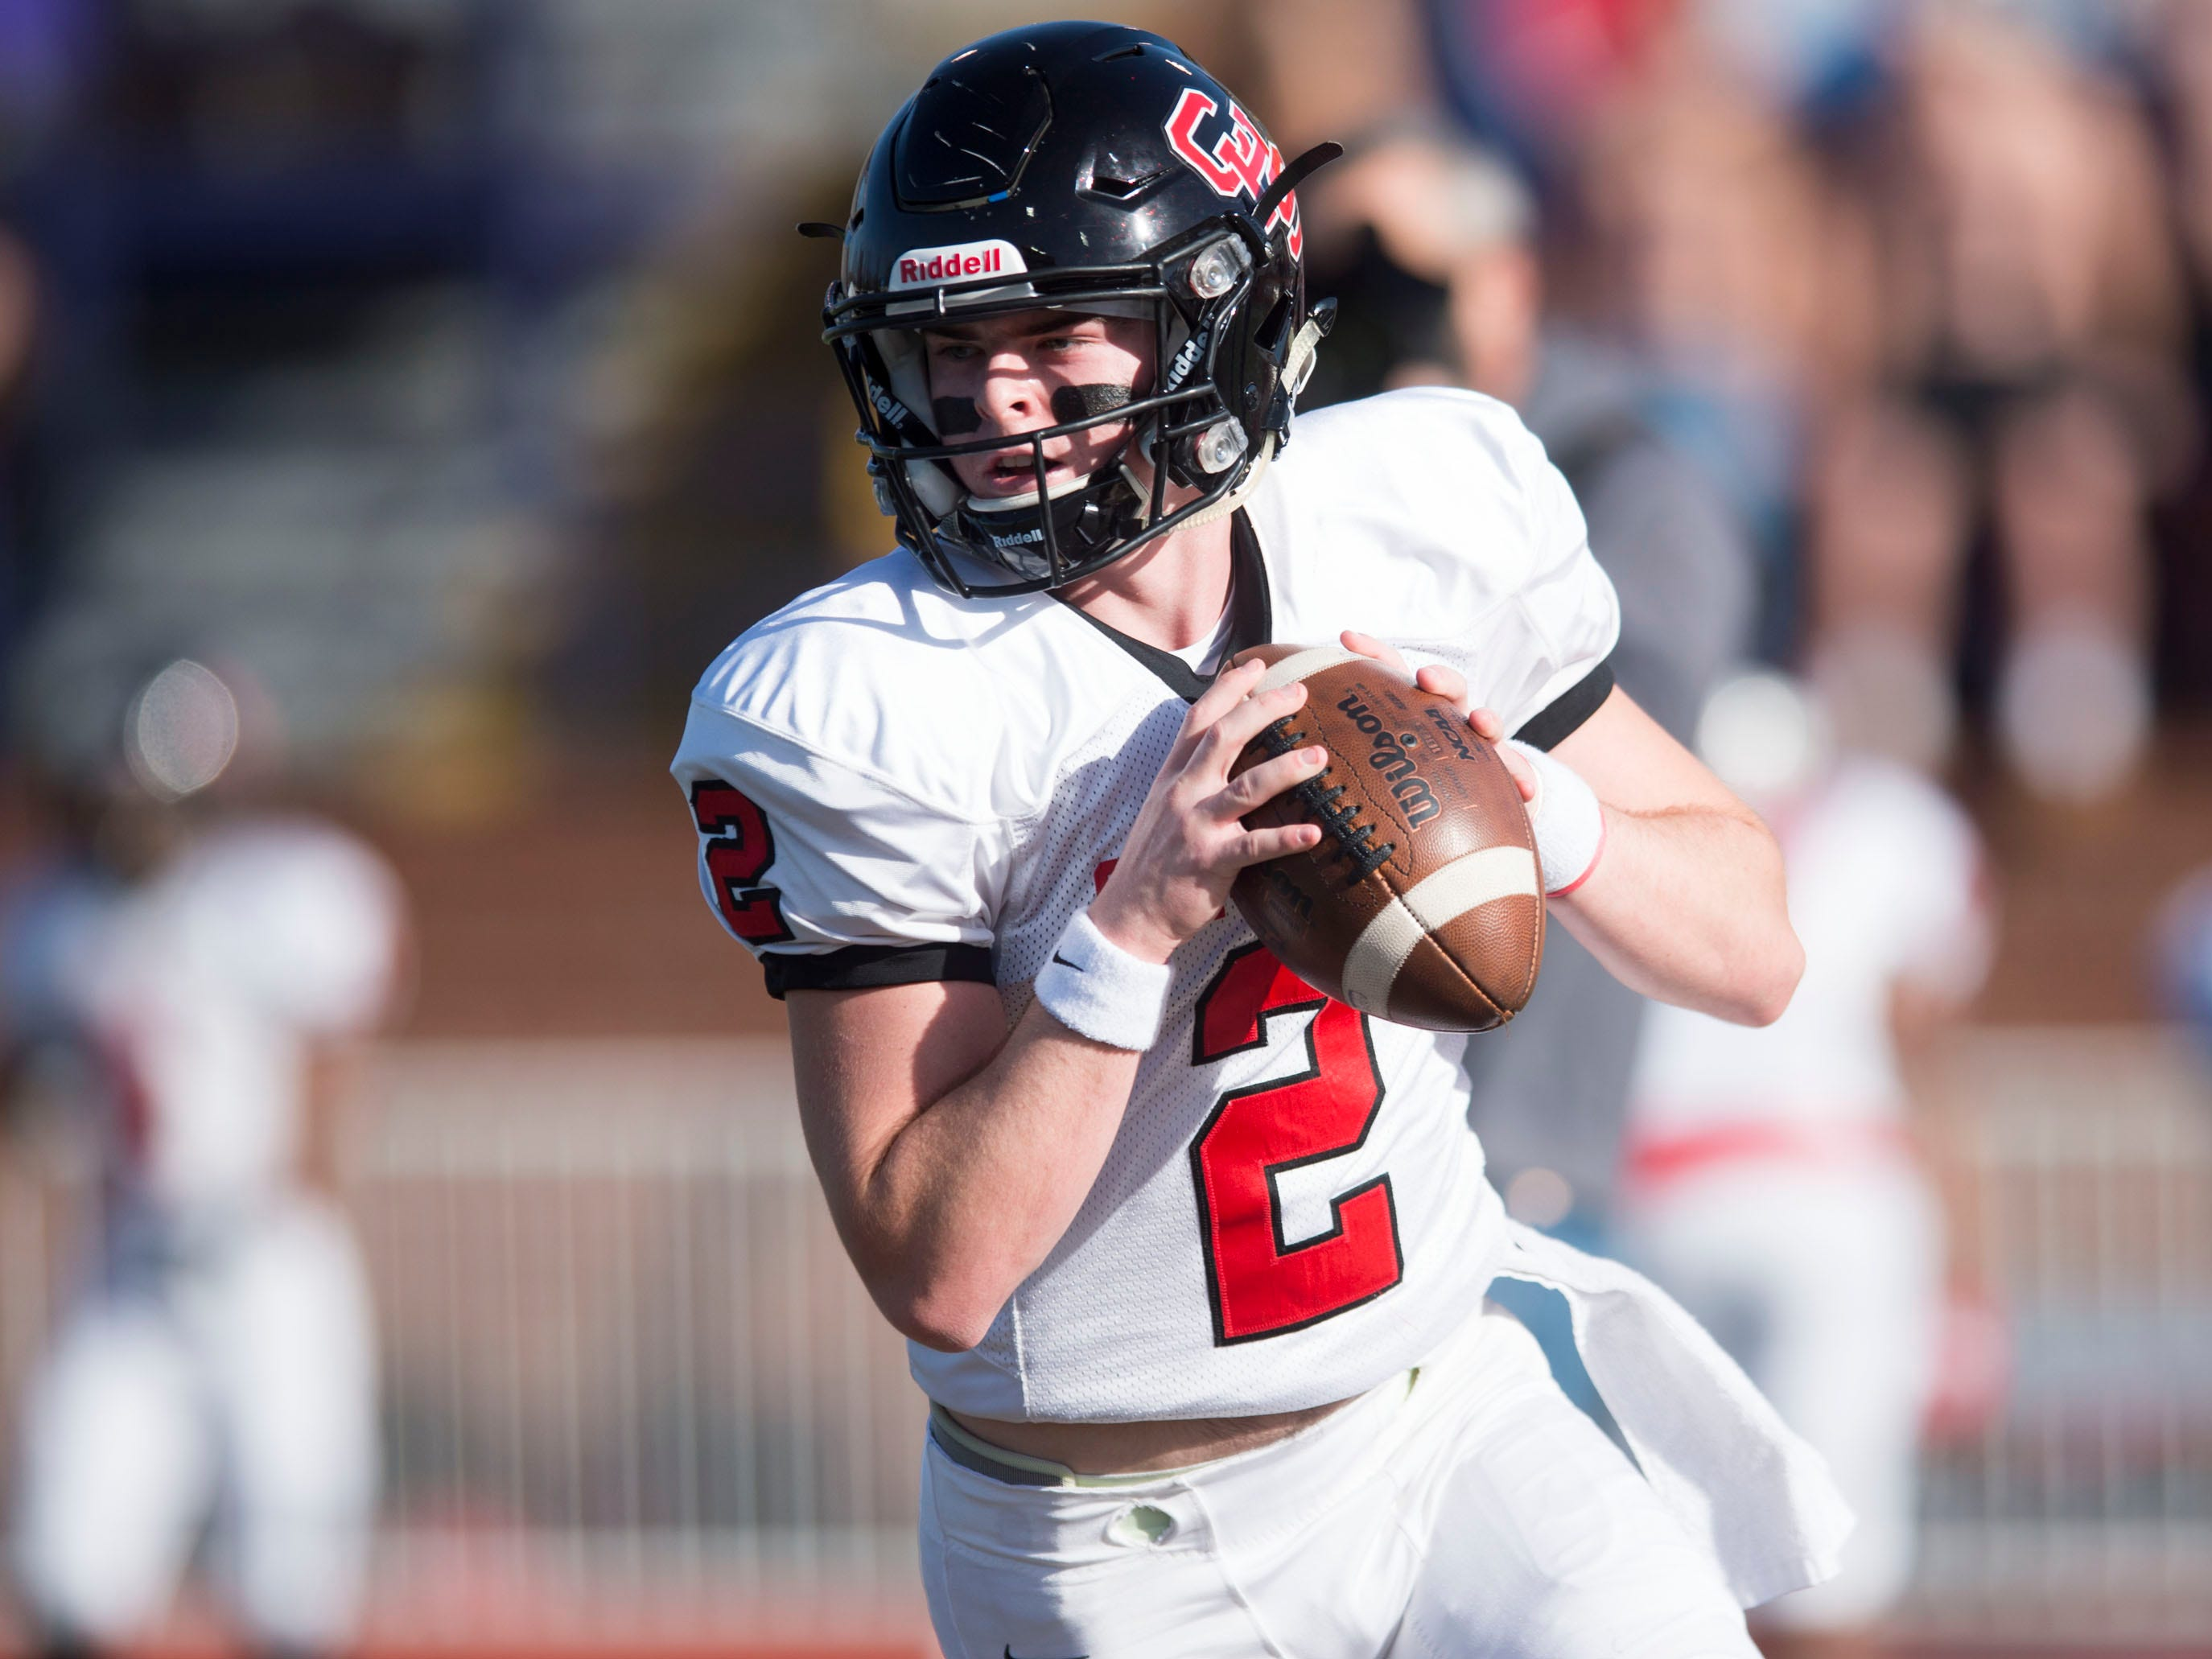 Top 10 high school football quarterbacks in the Knoxville area for the 2019 season